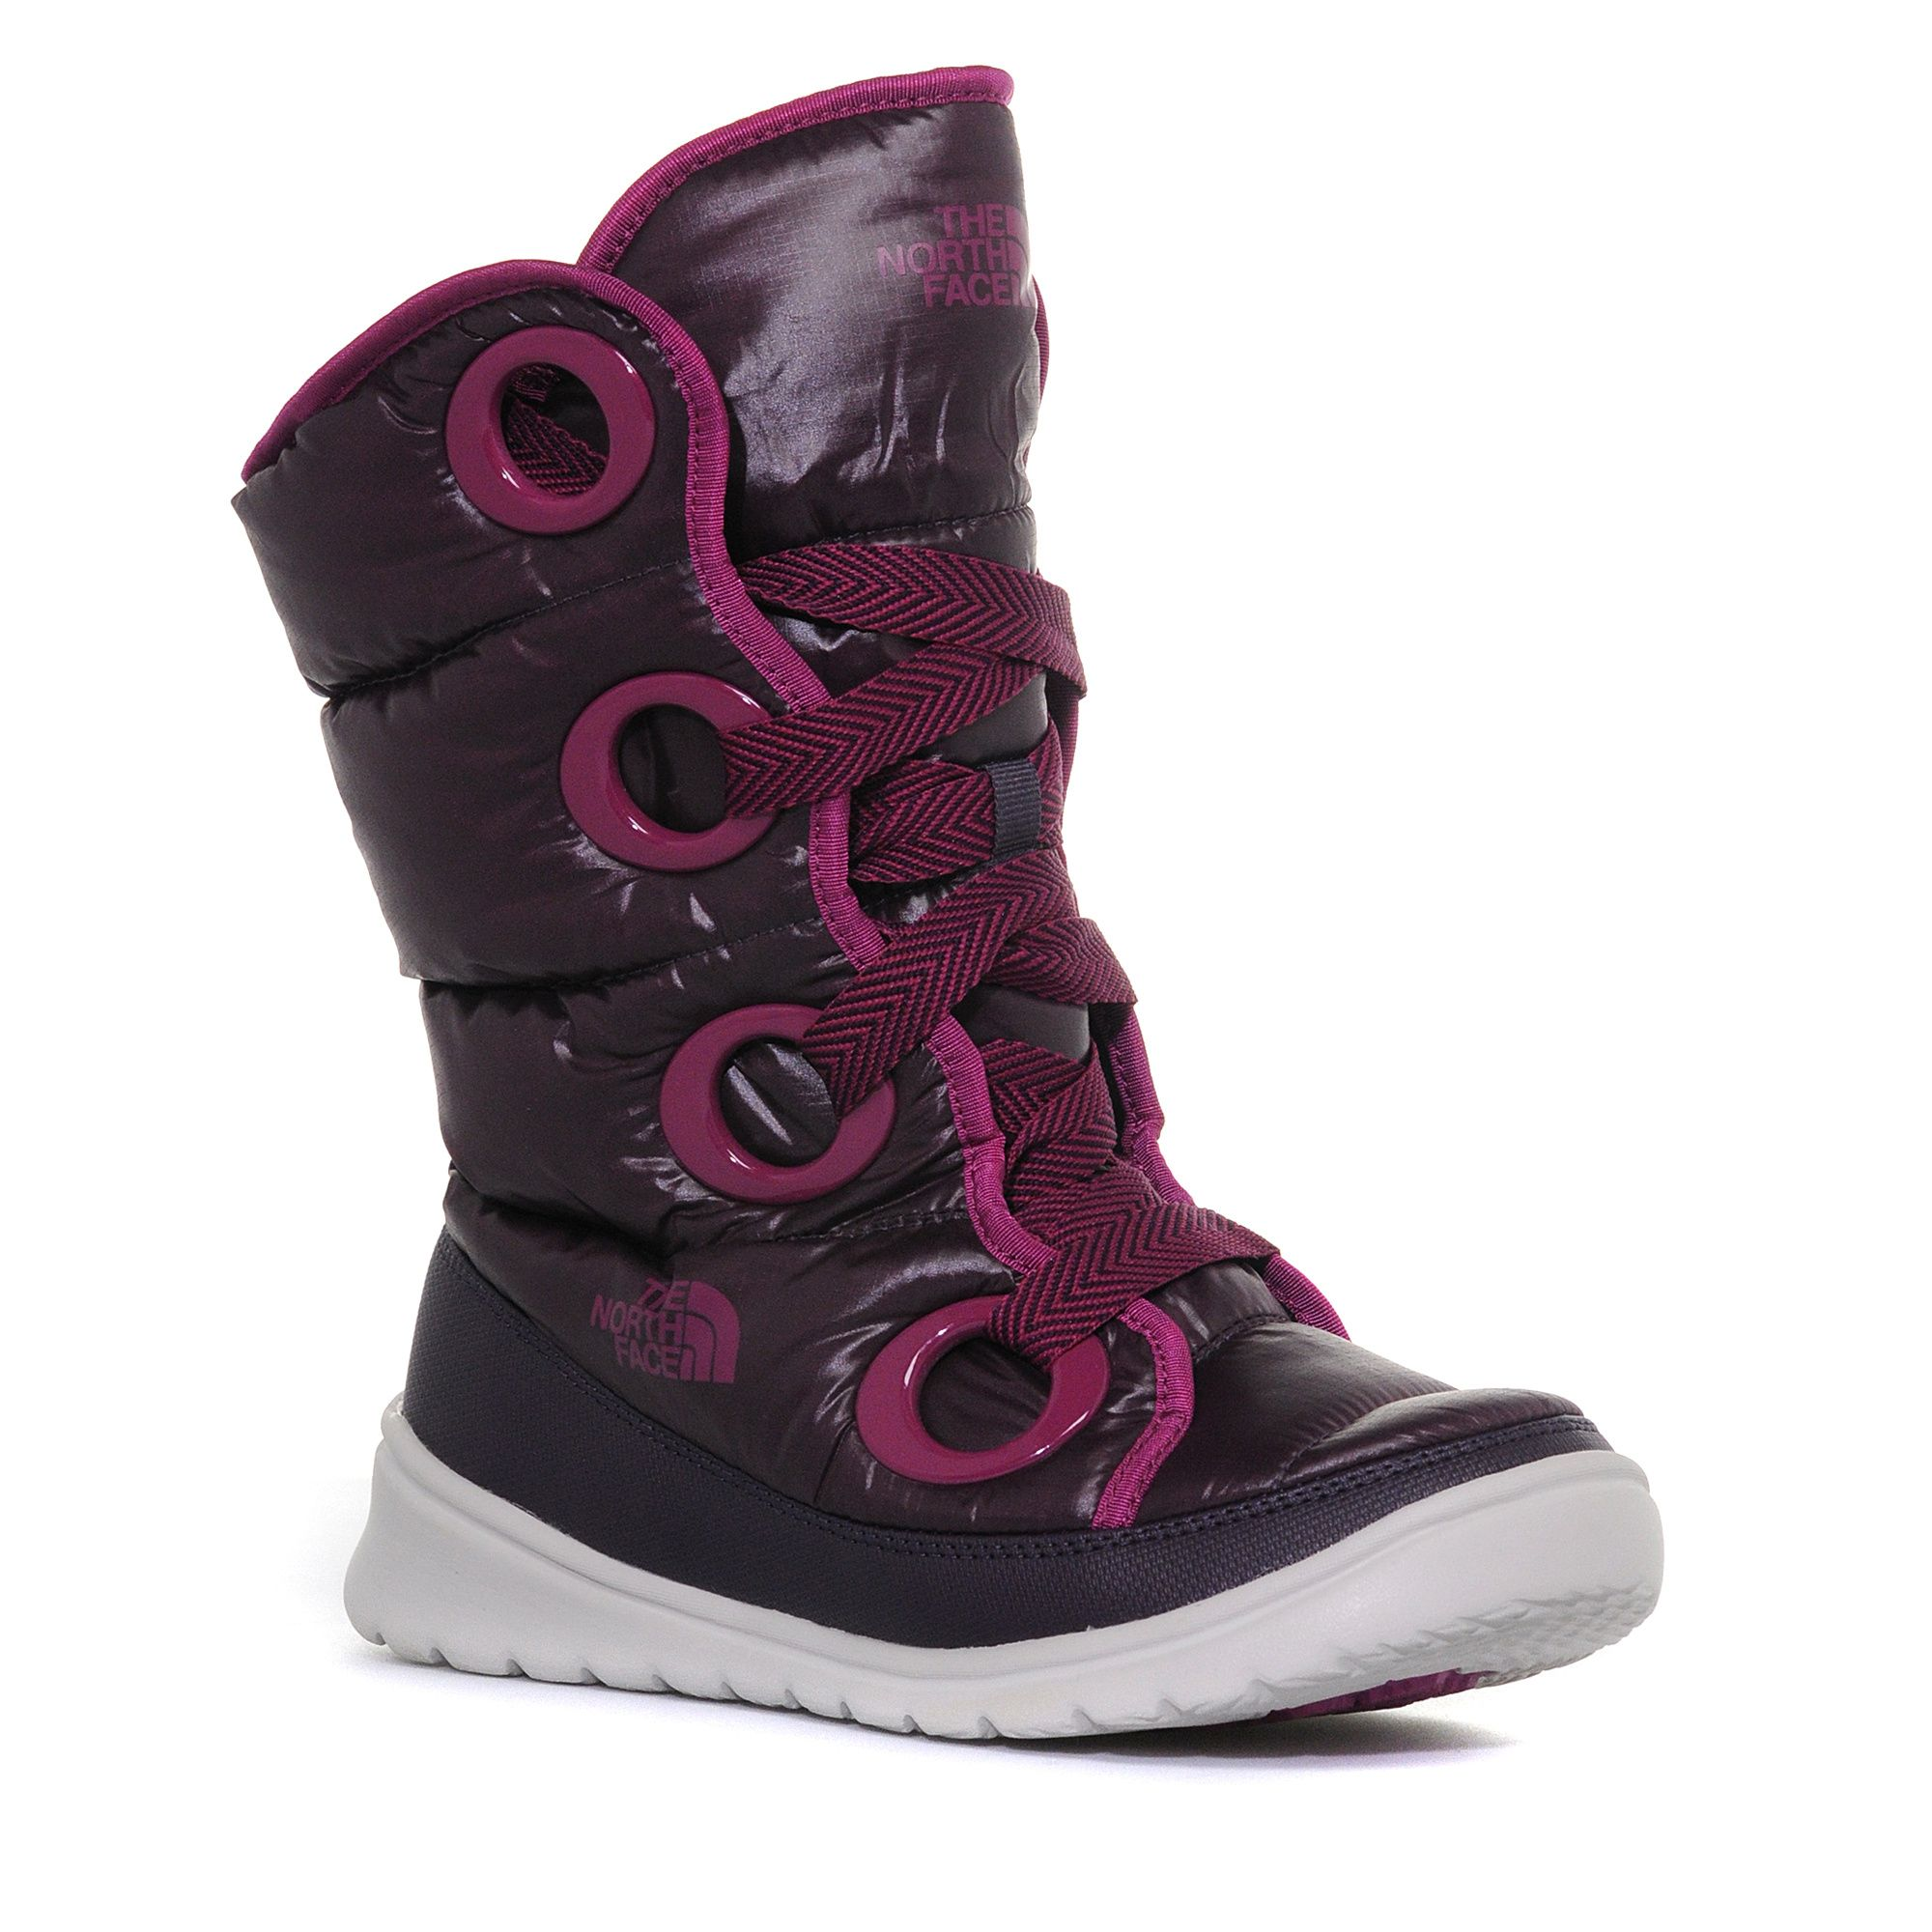 THE NORTH FACE Women's Destiny Down Boots